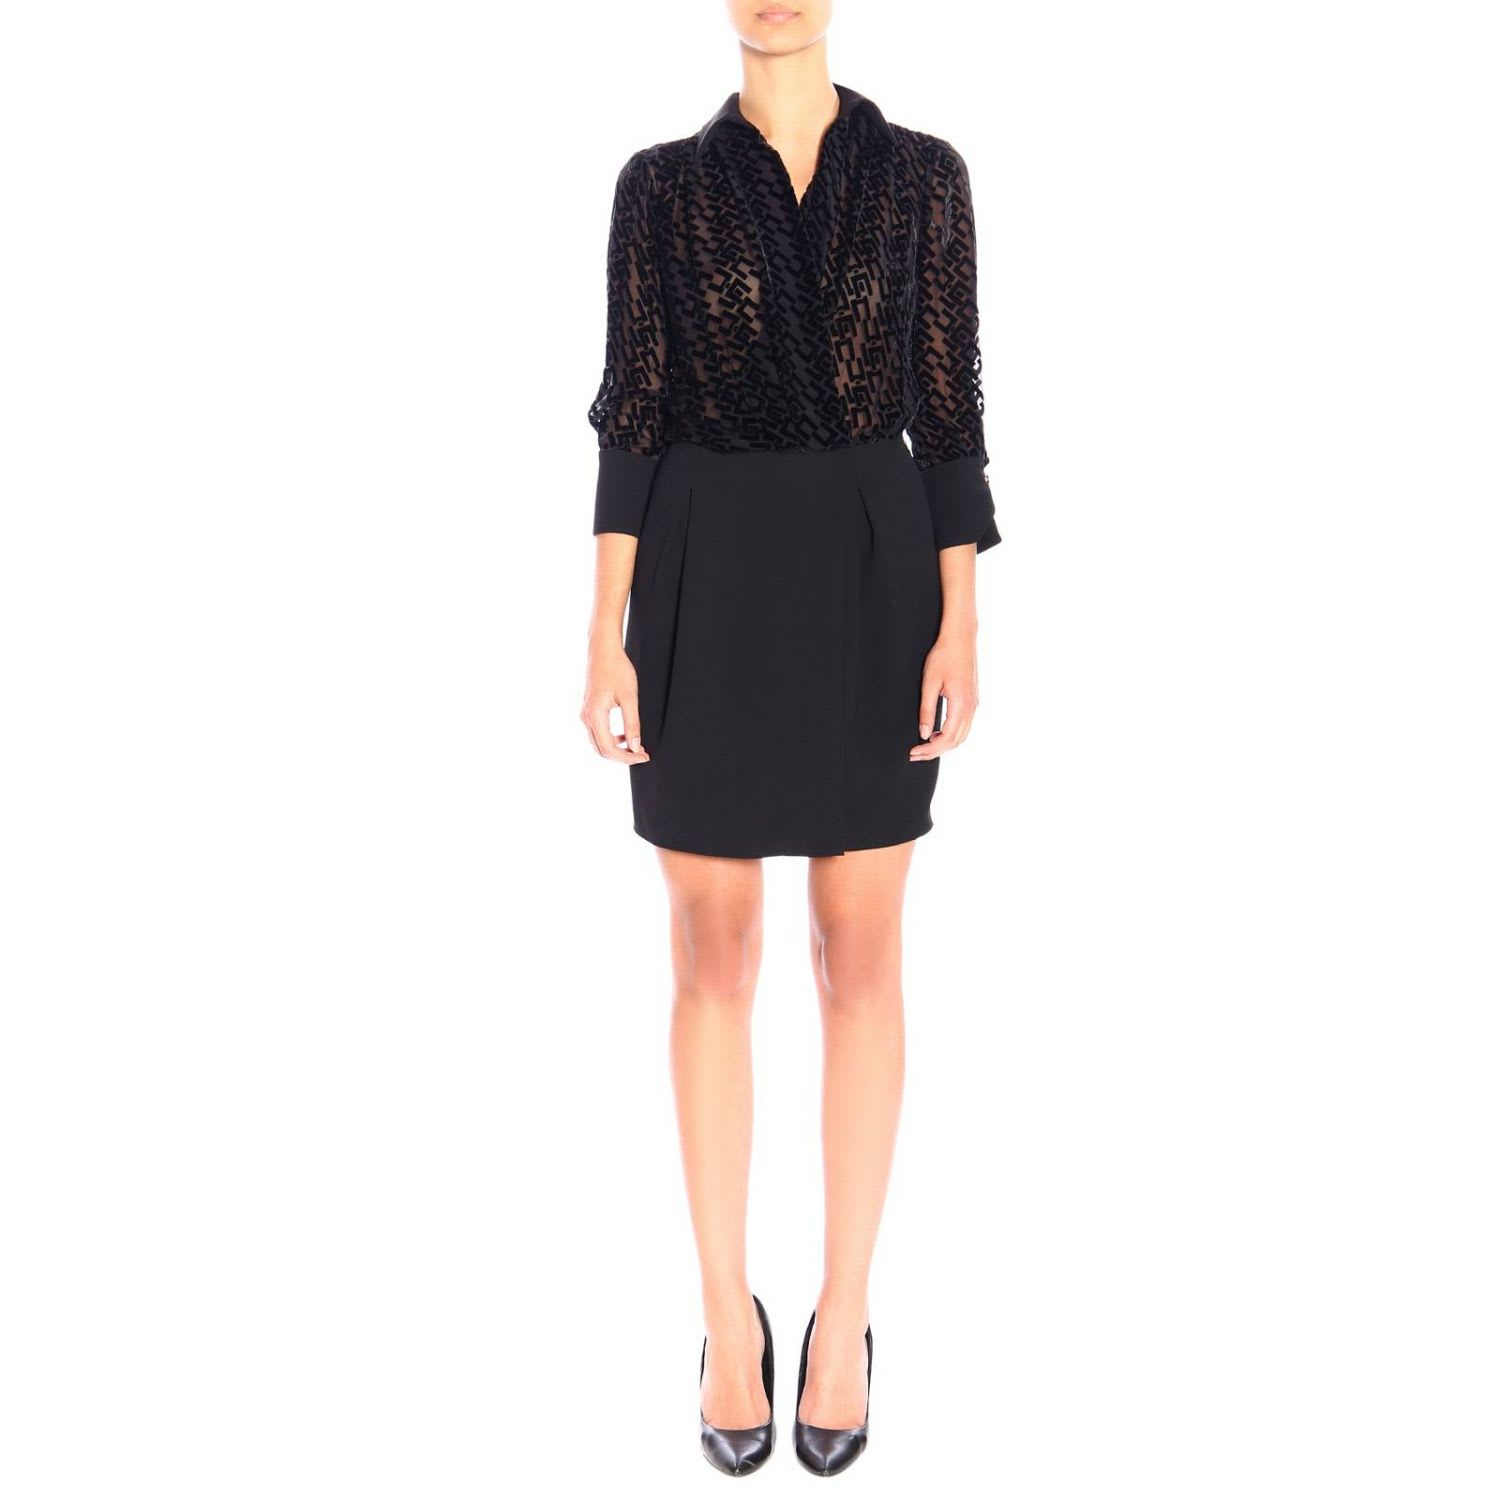 Elisabetta Franchi Dress Elisabetta Franchi Dress With All-over Flocked Logo